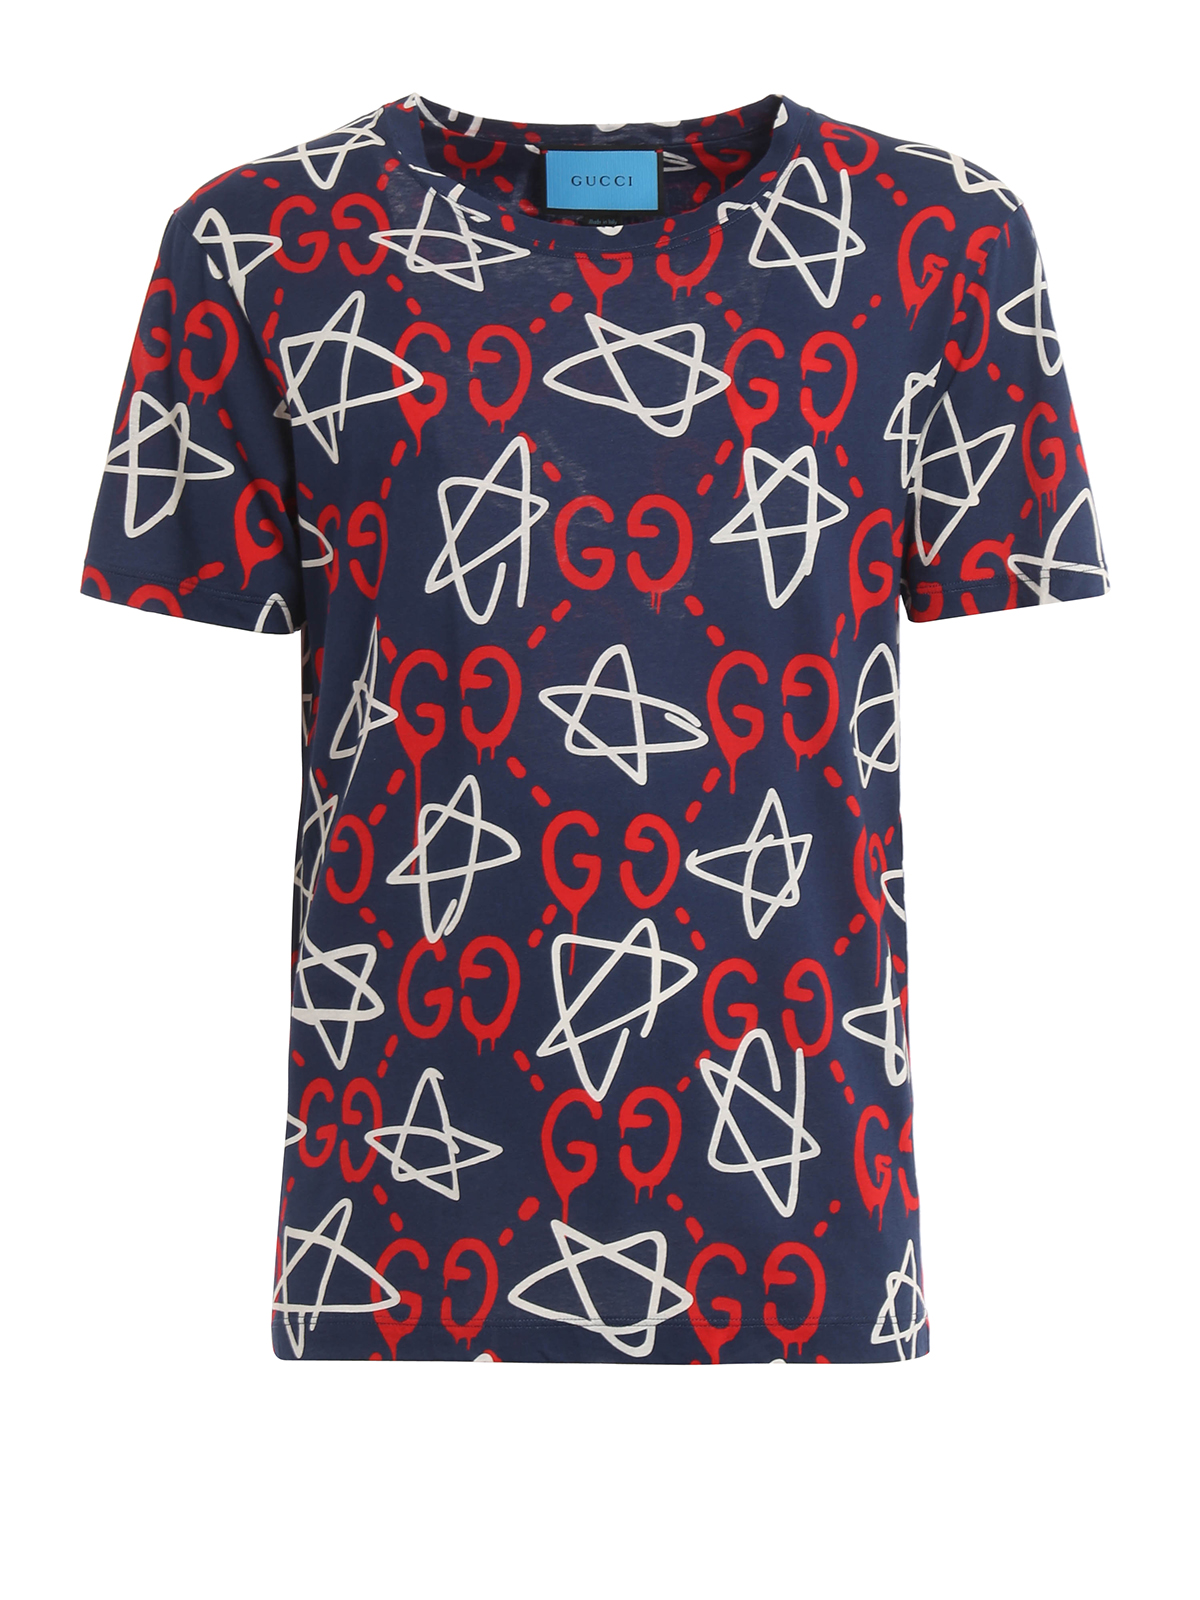 All over guccighost print t shirt by gucci t shirts for All over printing t shirts